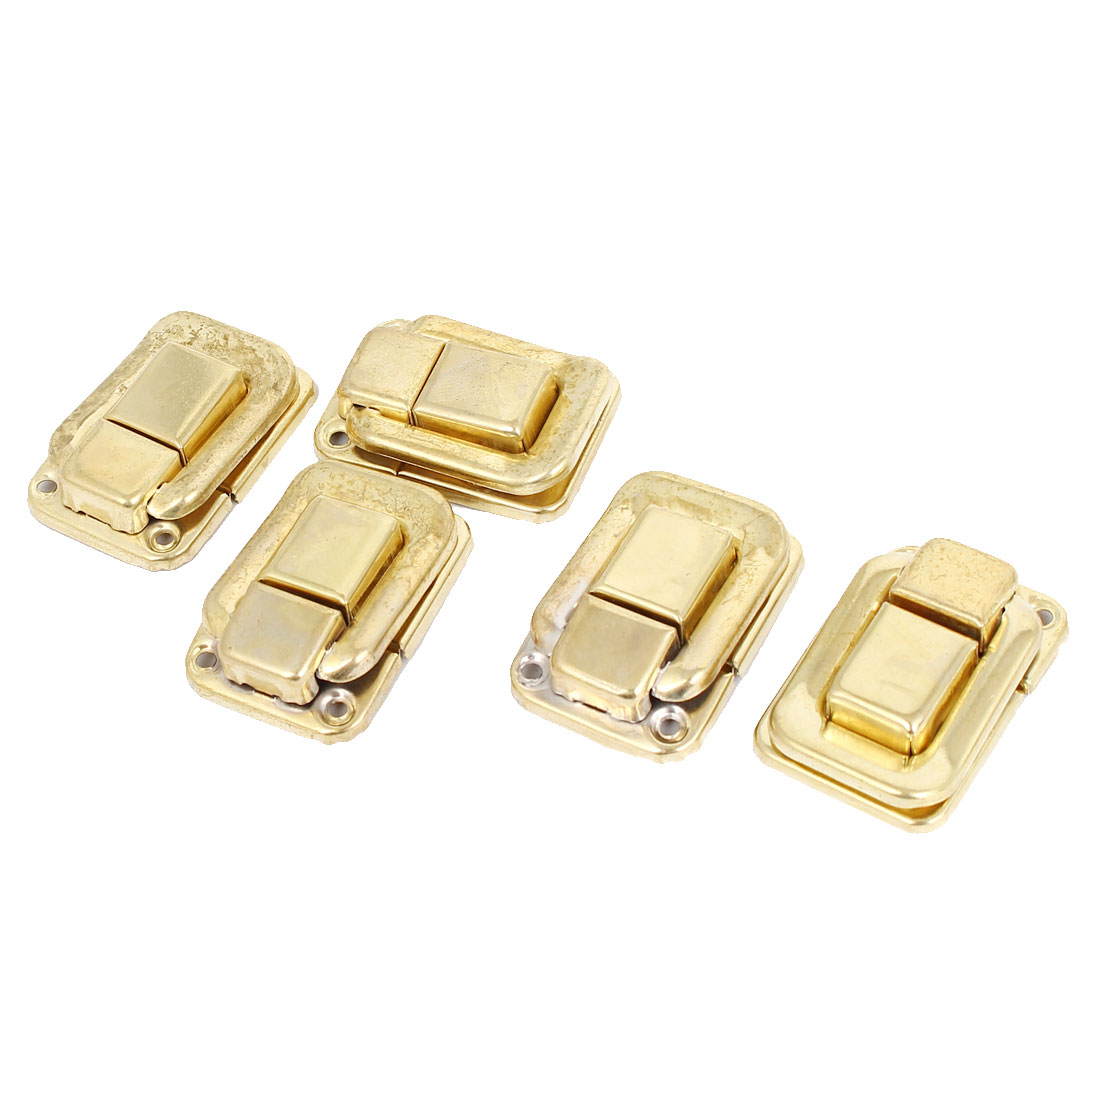 Drawer Case Fittings Hardware Toggle Latch Hasp Gold Tone 36mm Length 5pcs